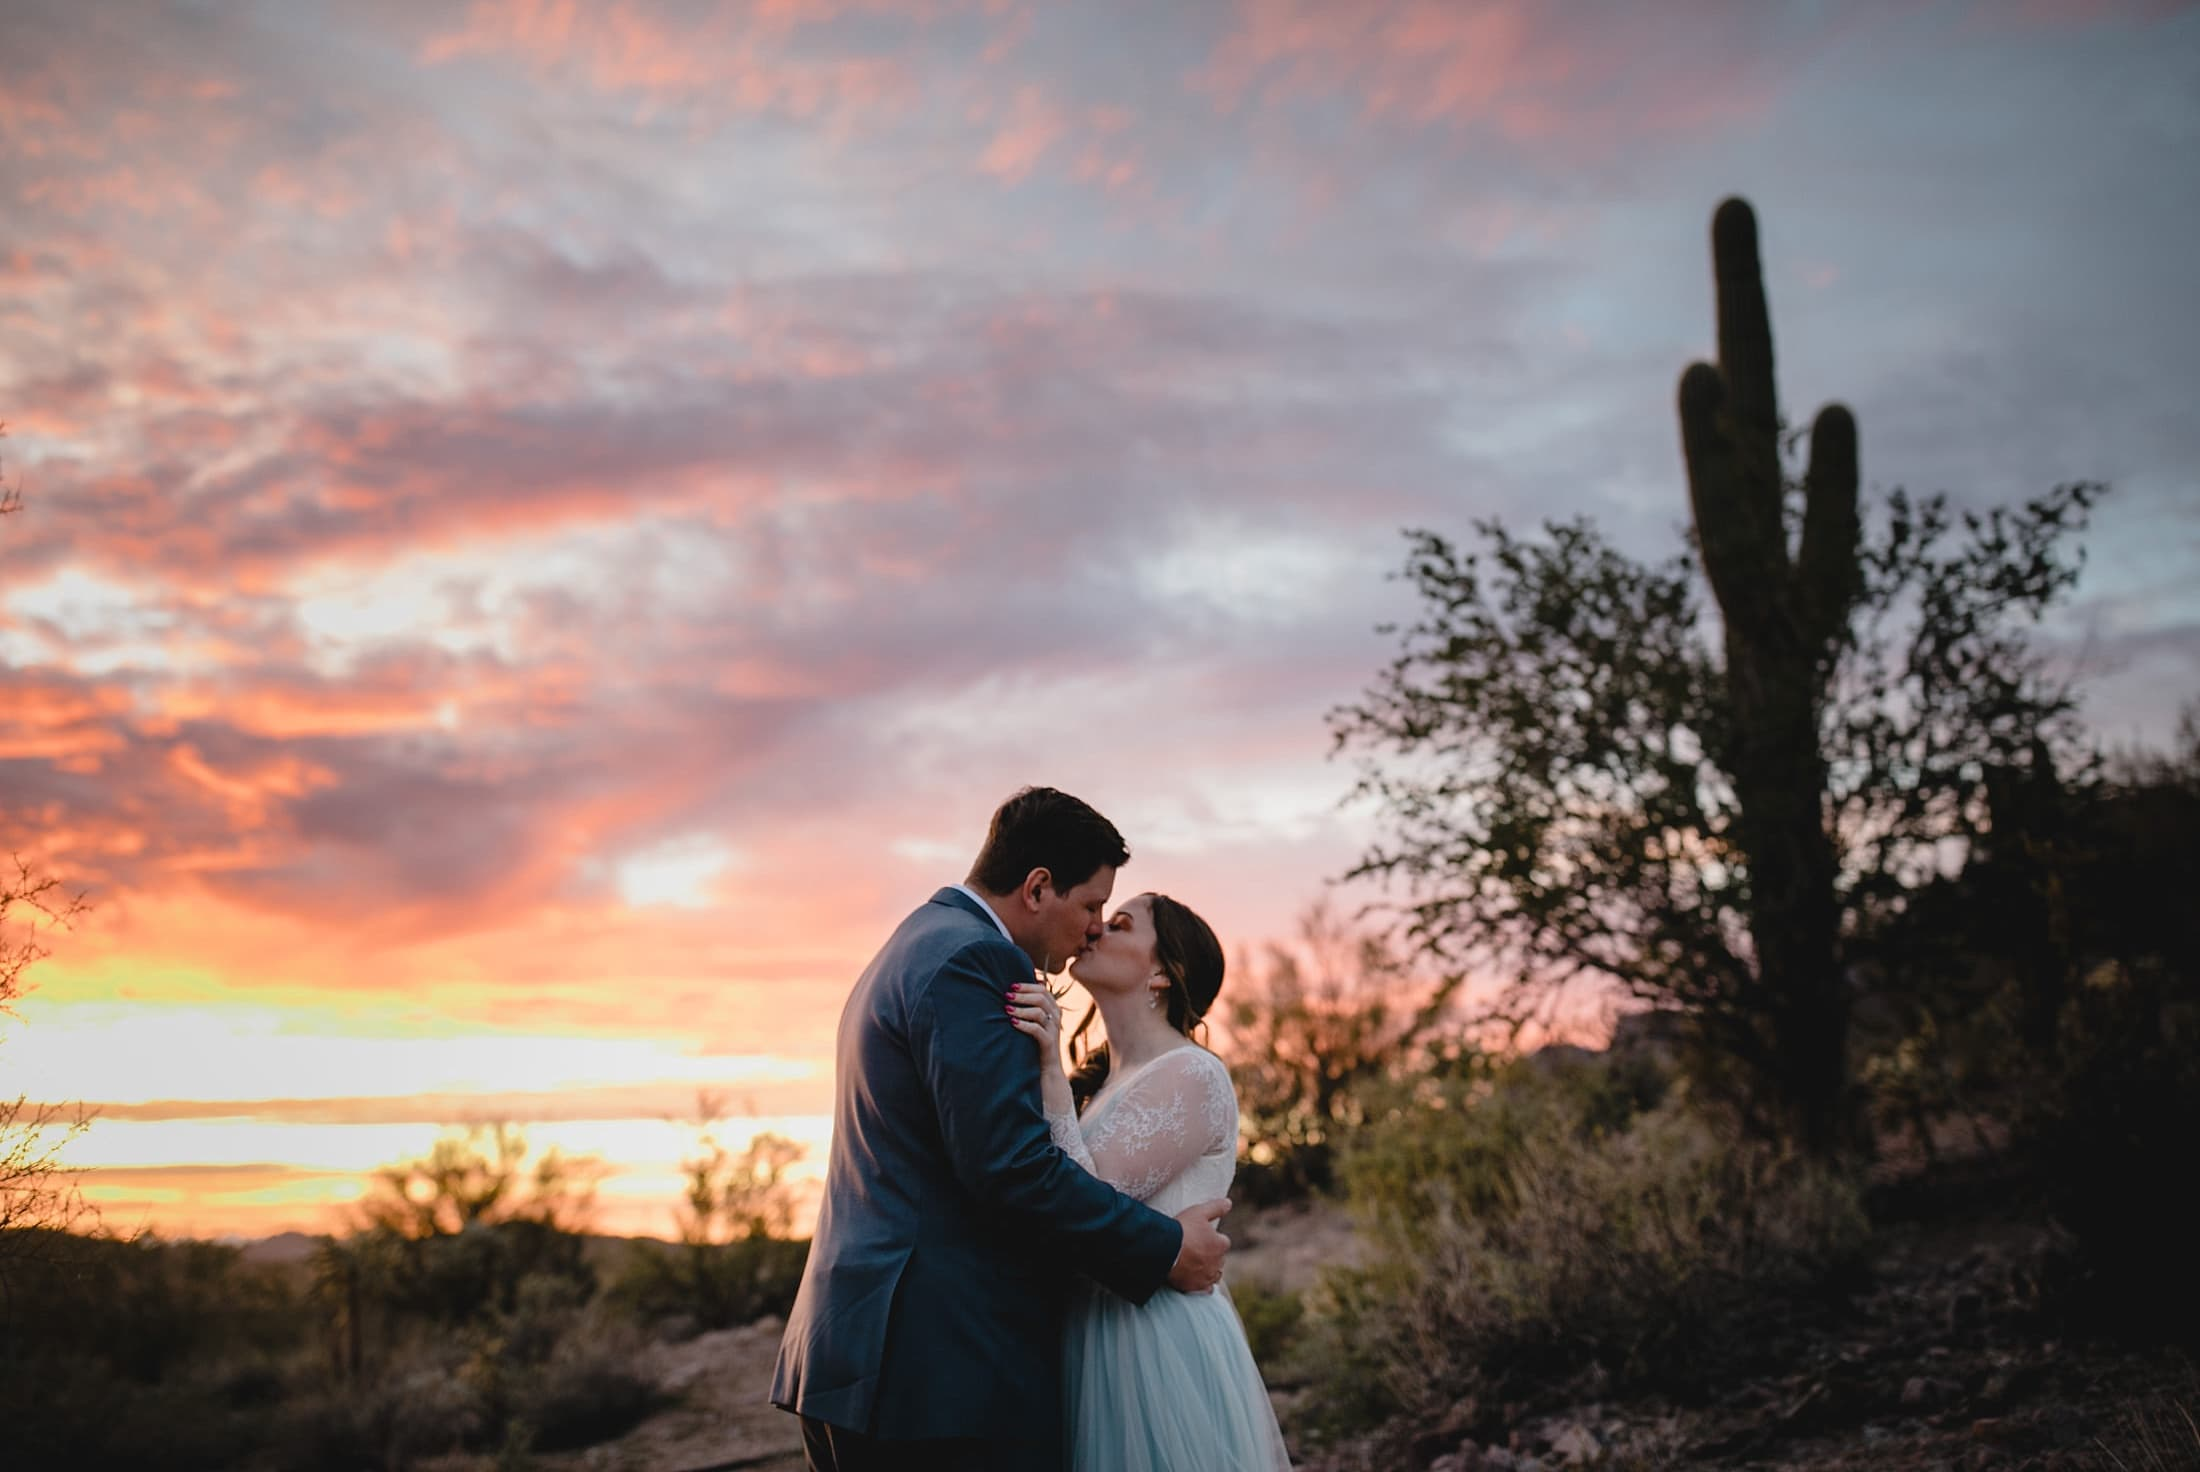 Arizona wedding colorful sunset